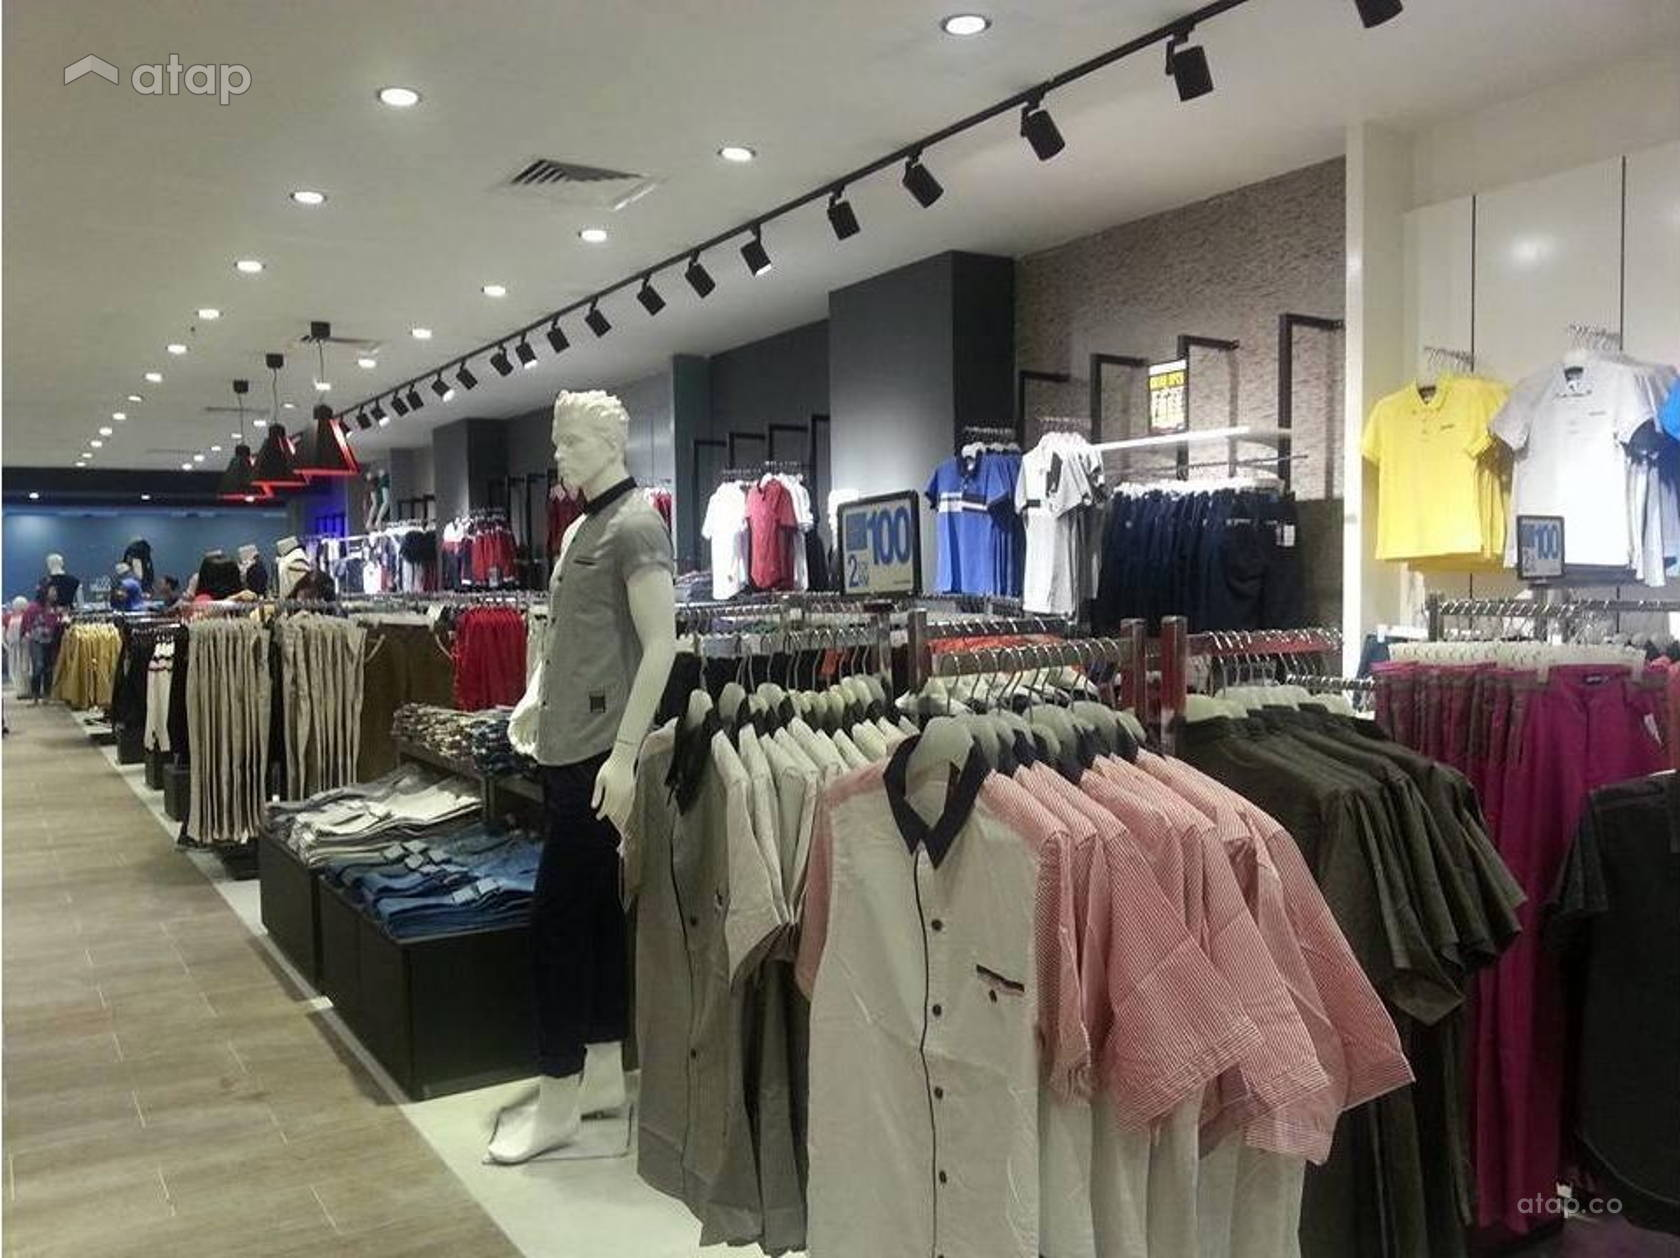 Ad Jeans Times Square Megamall Bintulu Interior Design Renovation Pinang Muda Fress Ideas Photos And Price In Malaysia